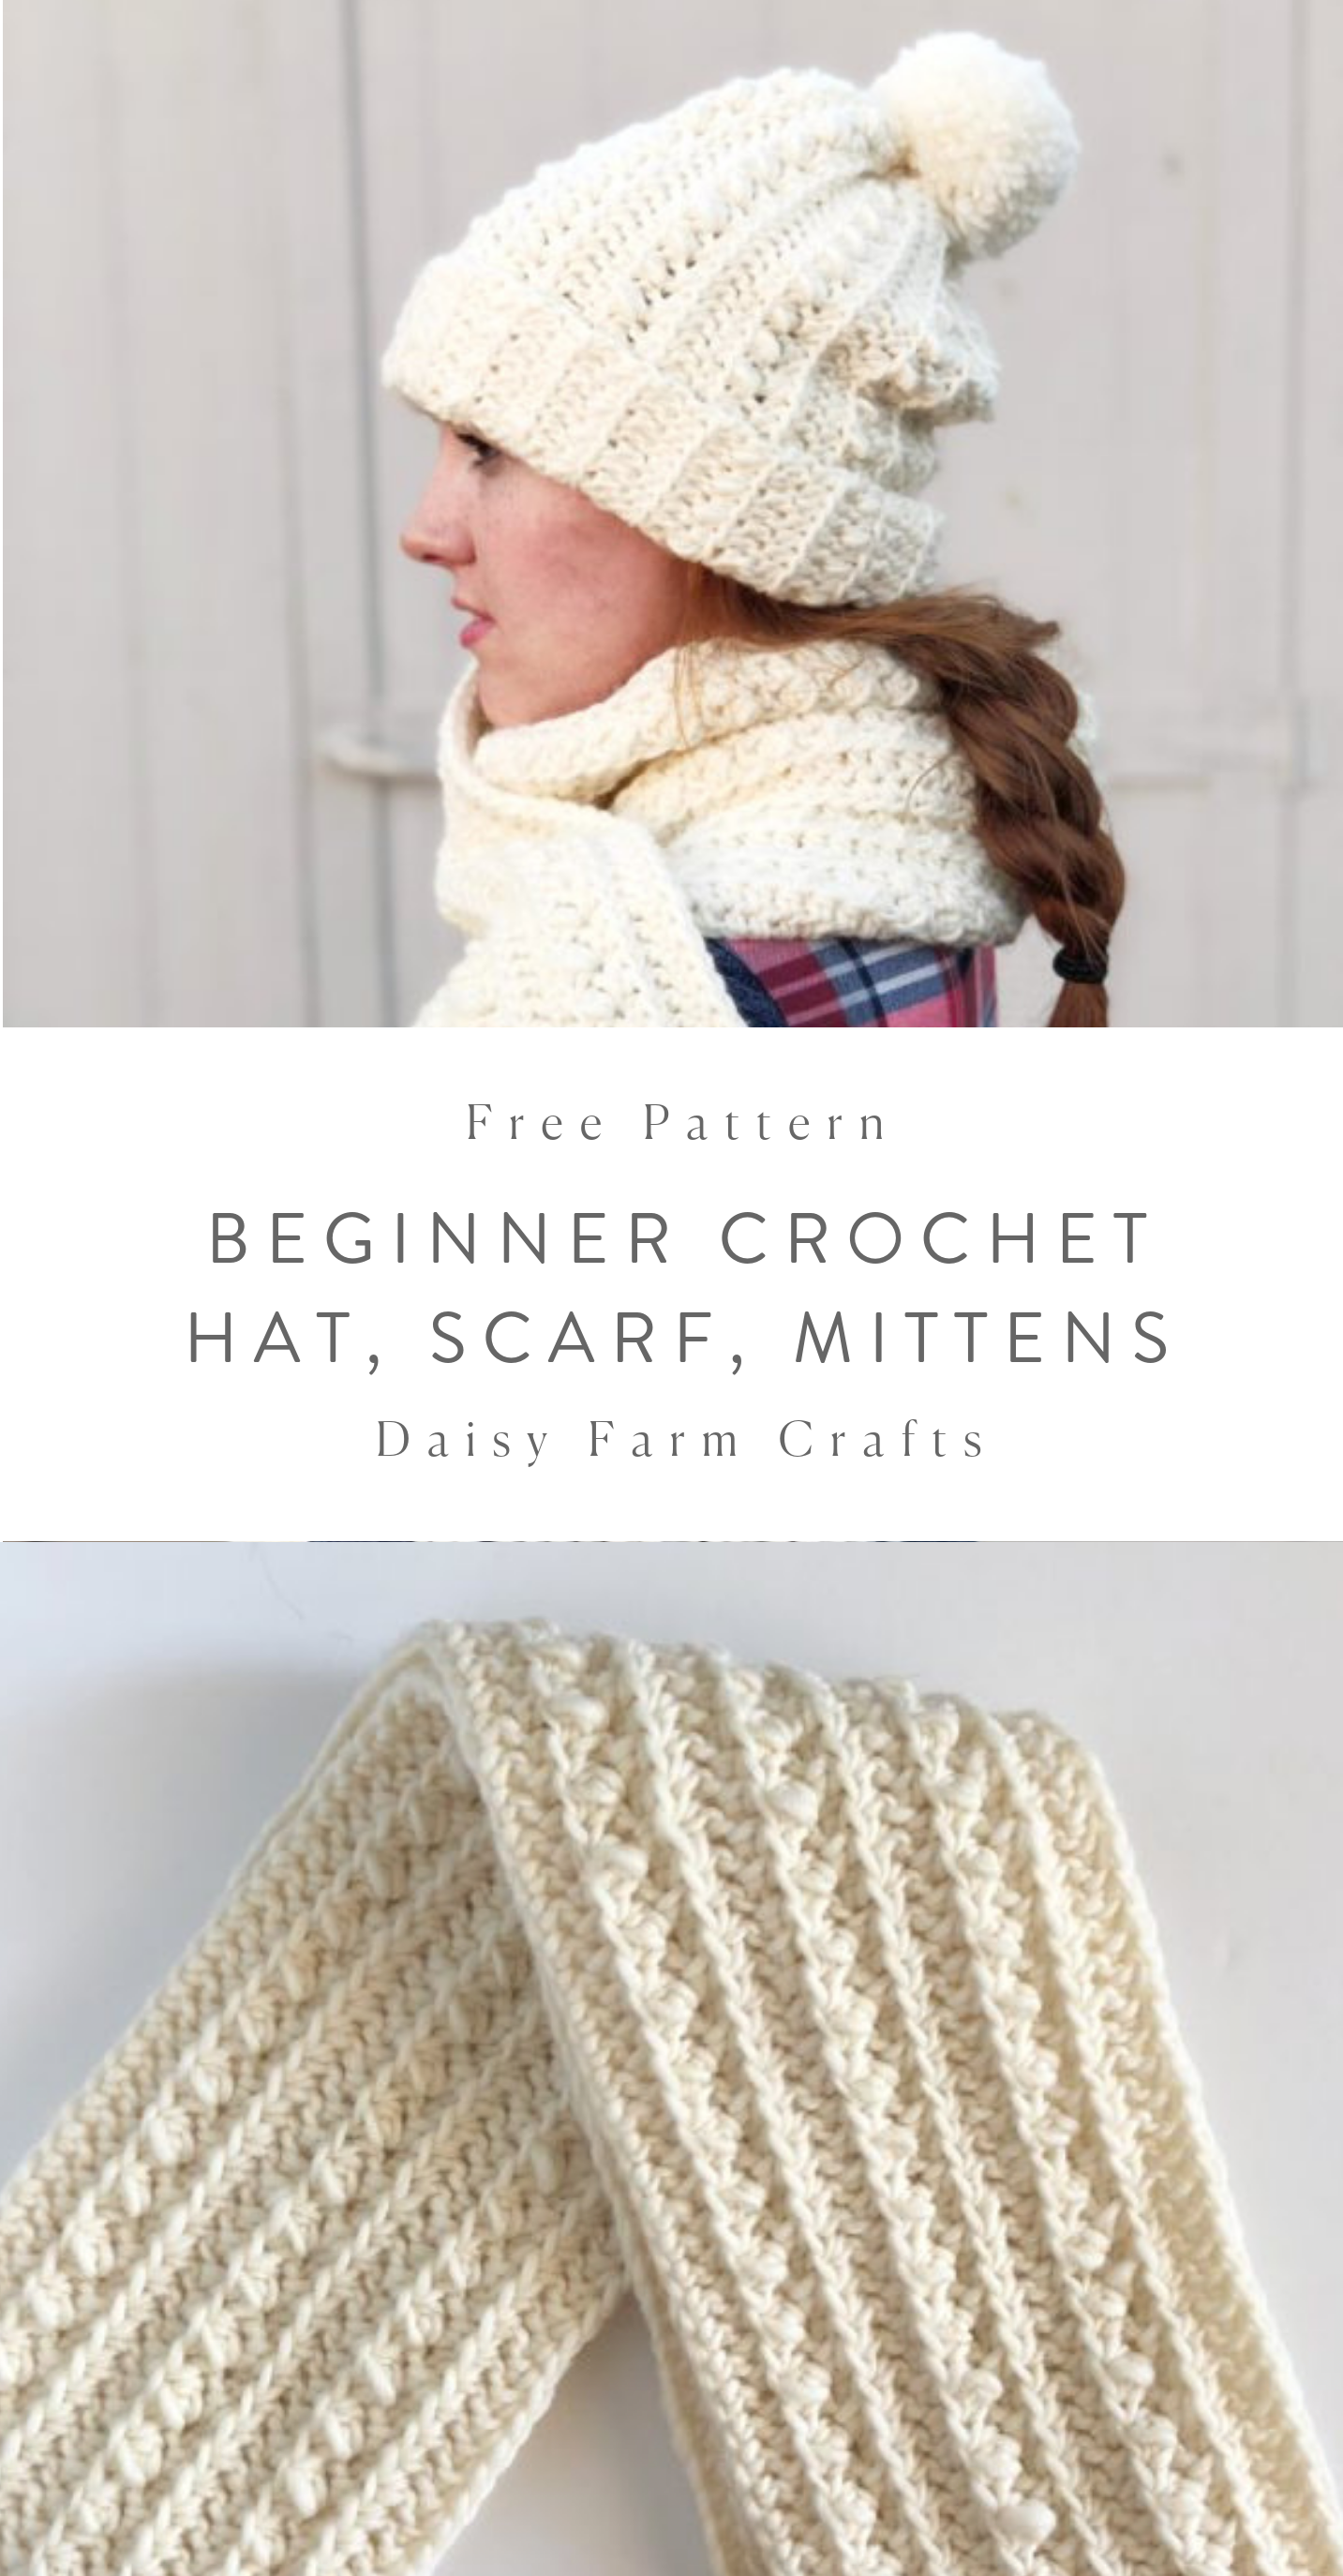 Free Patterns - Beginner Crochet Hat, Scarf and Mittens